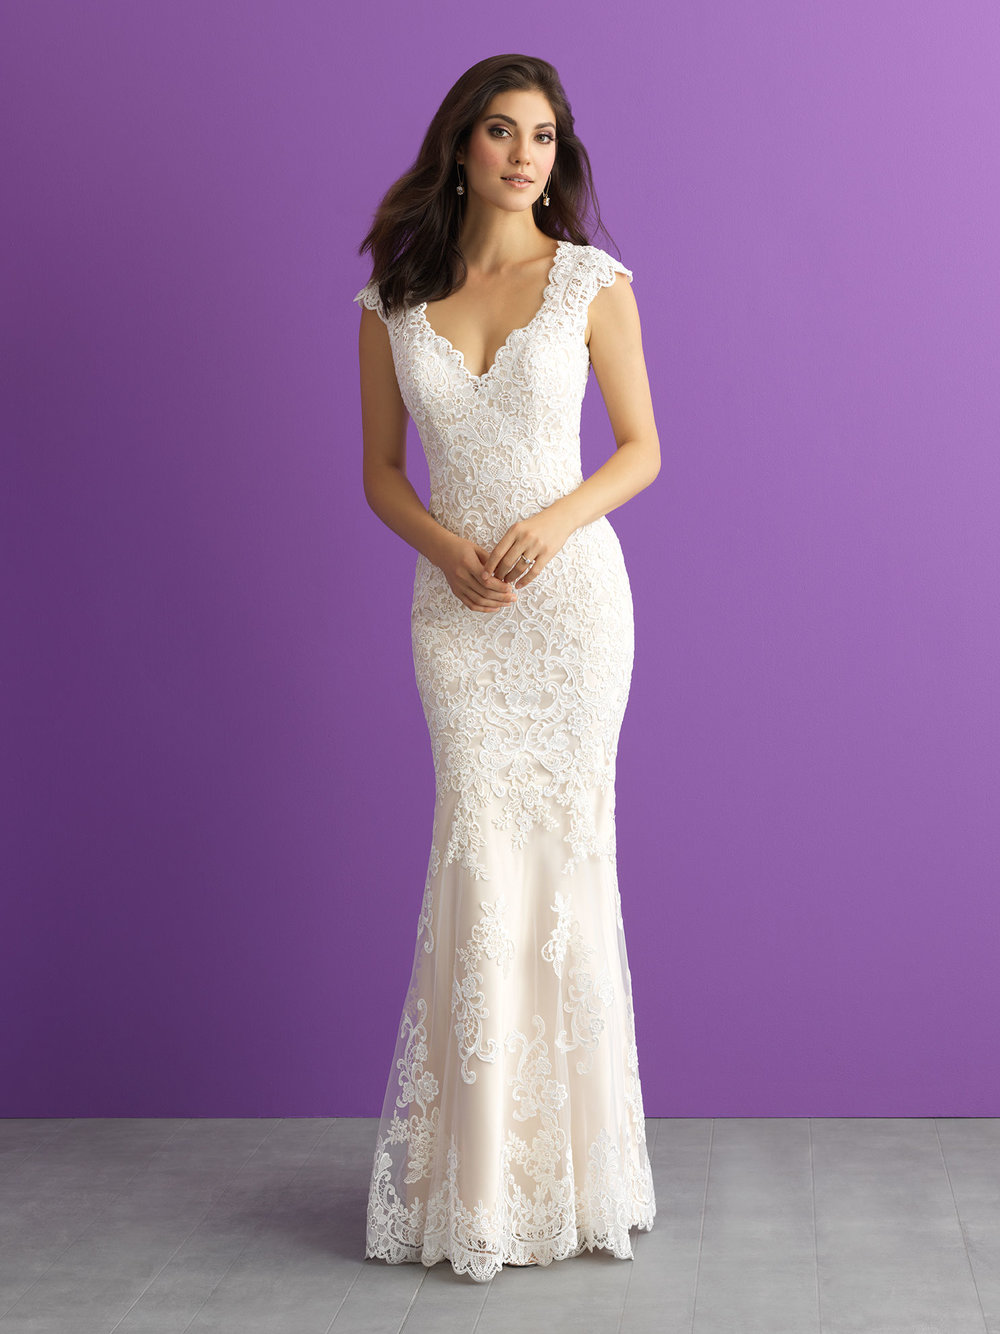 Style 3009 - Silk charmeuse adds a shimmering contrast to this lace sheath.